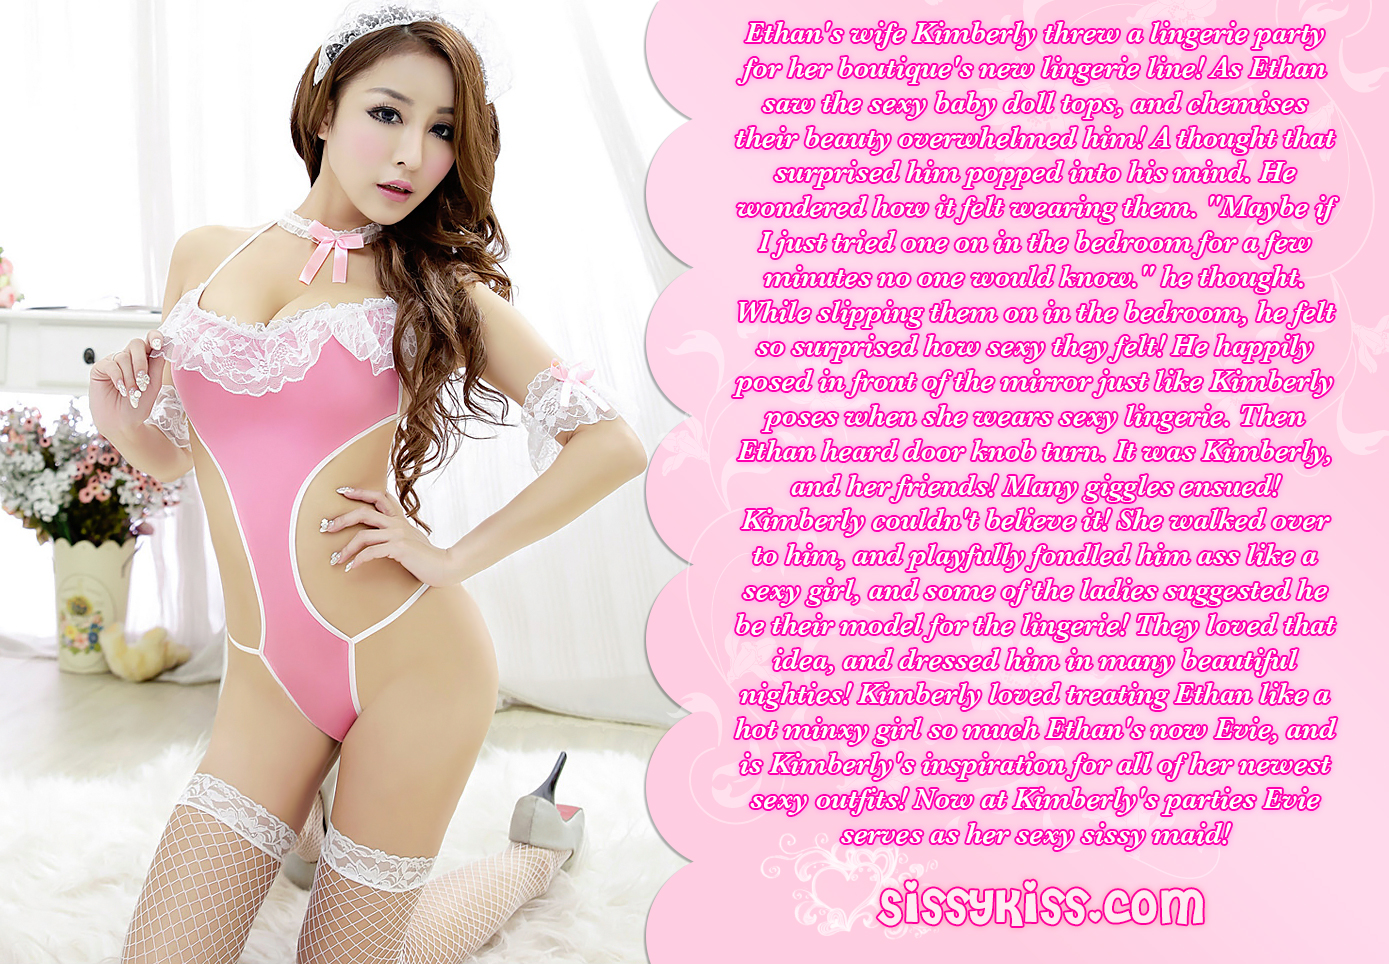 sissy maid chat